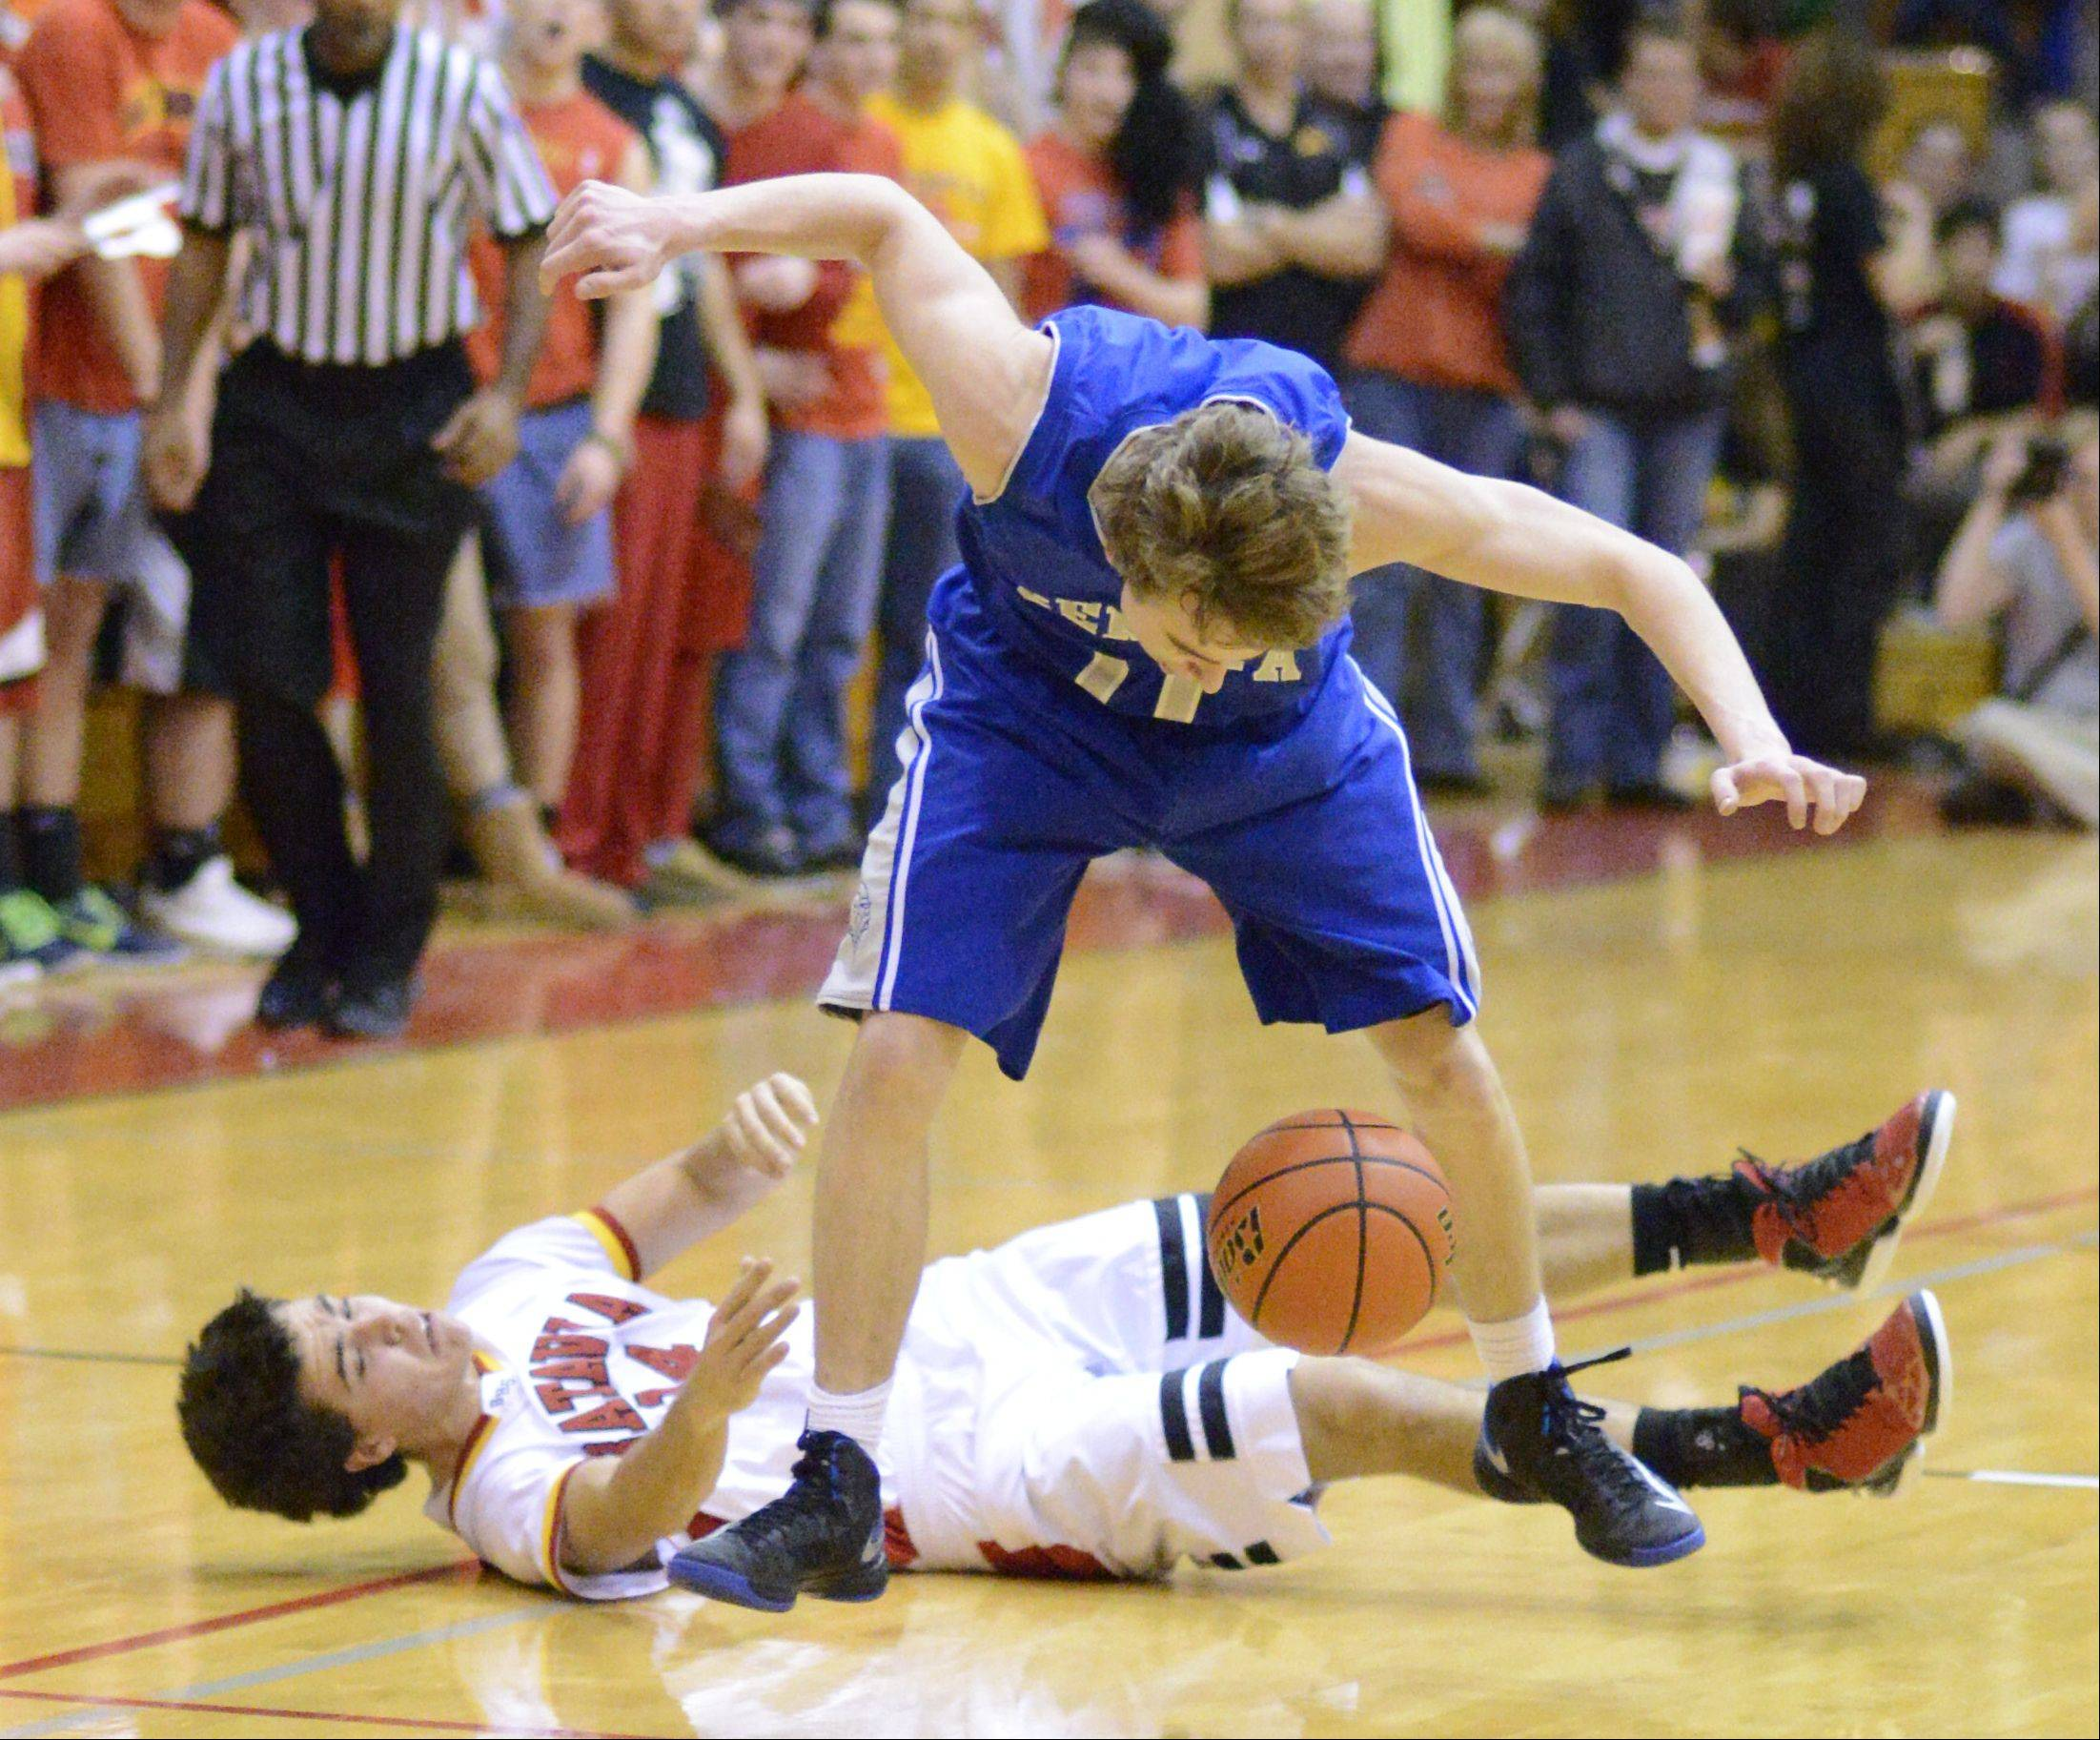 Images from the Geneva vs. Batavia boys basketball game Friday, January 11, 2013.